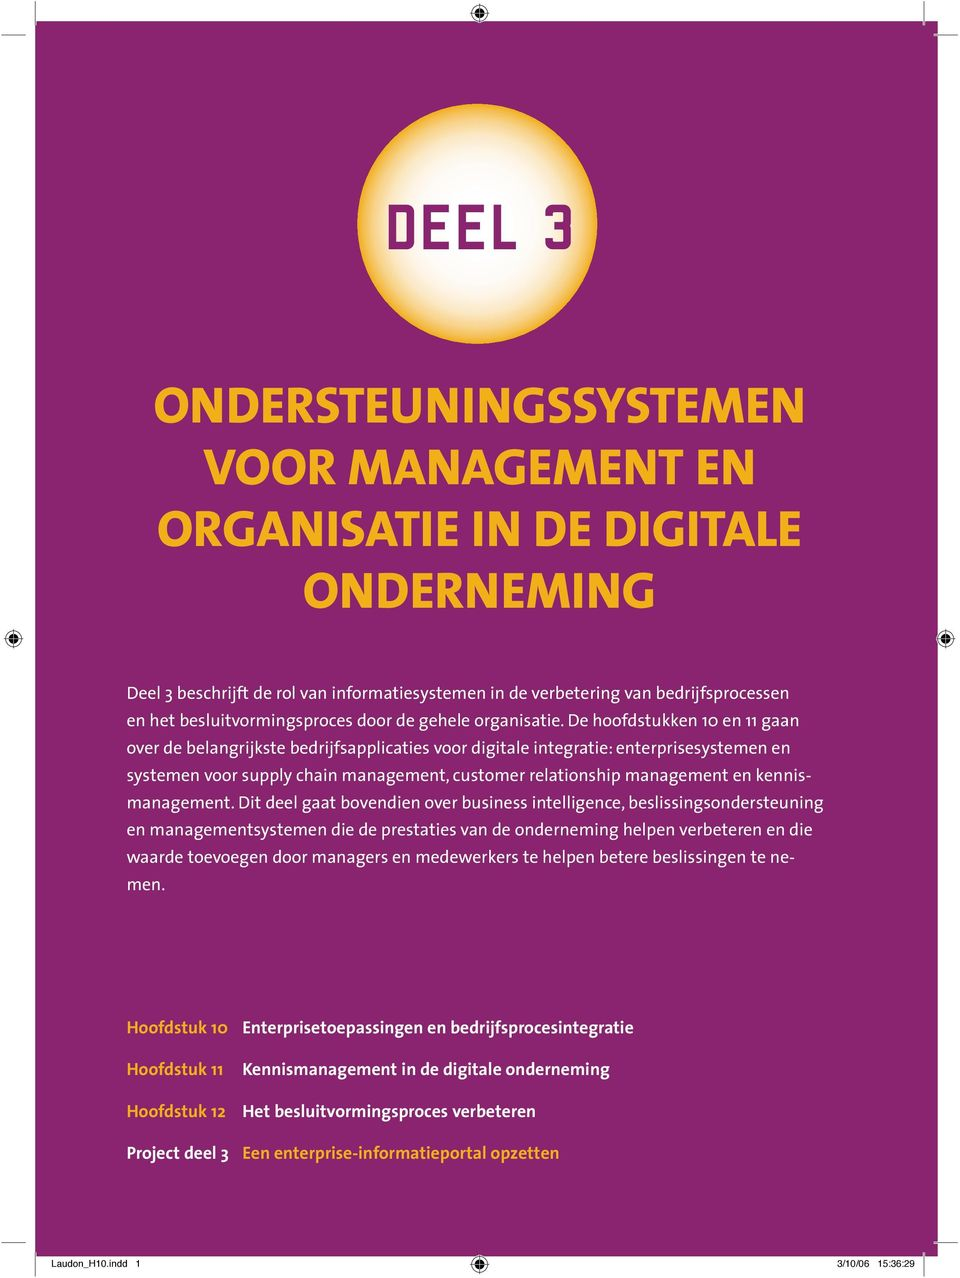 De hoofdstukken 10 en 11 gaan over de belangrijkste bedrijfsapplicaties voor digitale integratie: enterprisesystemen en systemen voor supply chain management, customer relationship management en